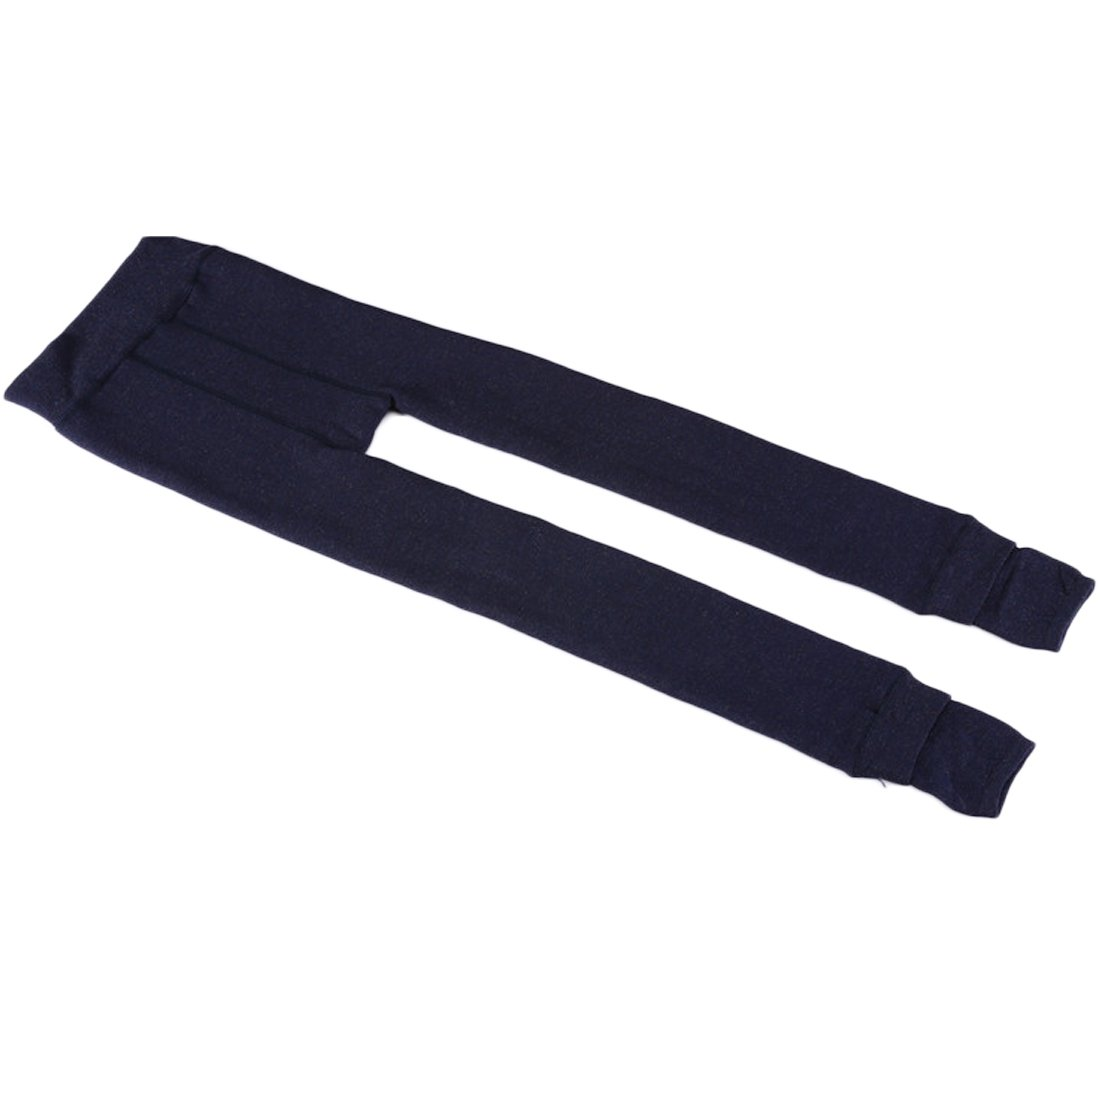 Weigou Winter Girls Leggings Pants Thick Warm Fleece Lined Thermal Stretchy Pants (L(11-14 Yeas ,Height 140-150cm), Navy) by Weigou (Image #4)